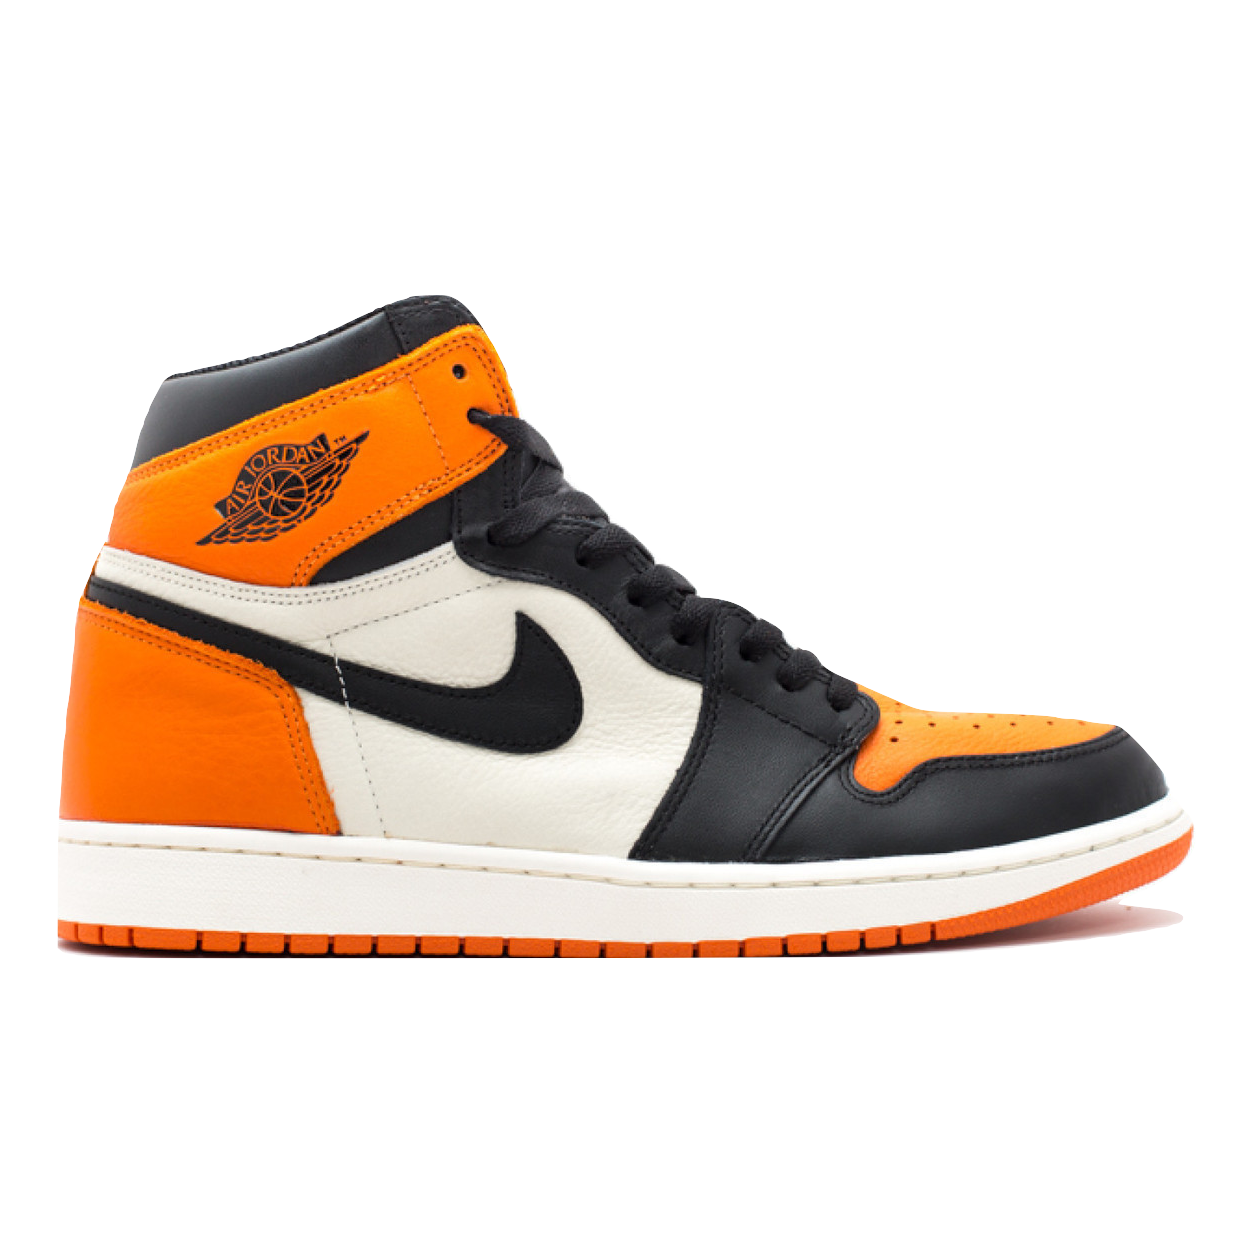 Air Jordan 1 Retro High OG - Shattered Backboard